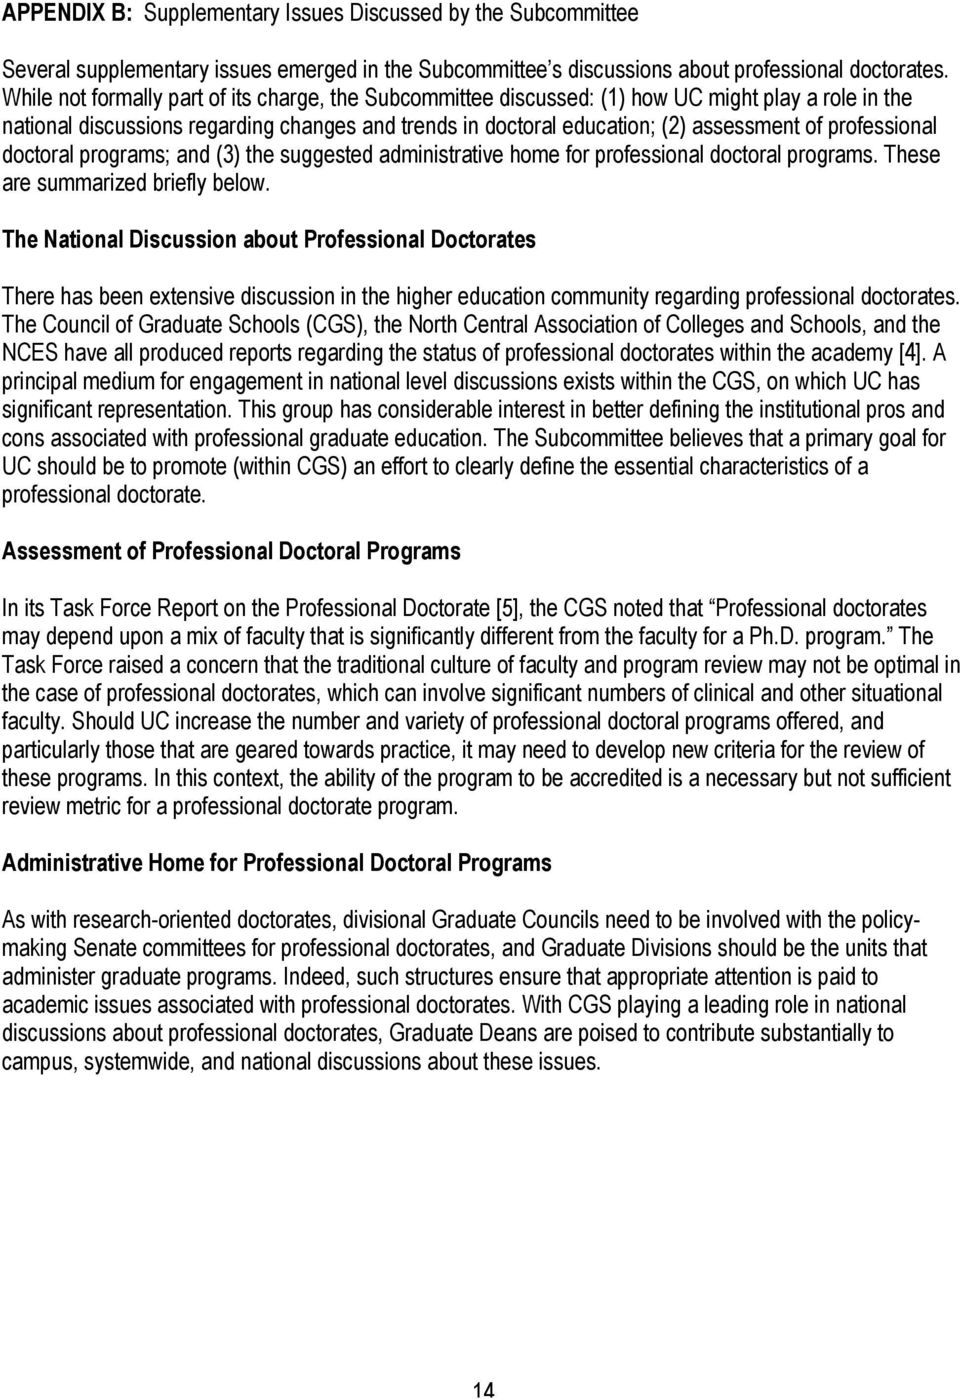 professional doctoral programs; and (3) the suggested administrative home for professional doctoral programs. These are summarized briefly below.